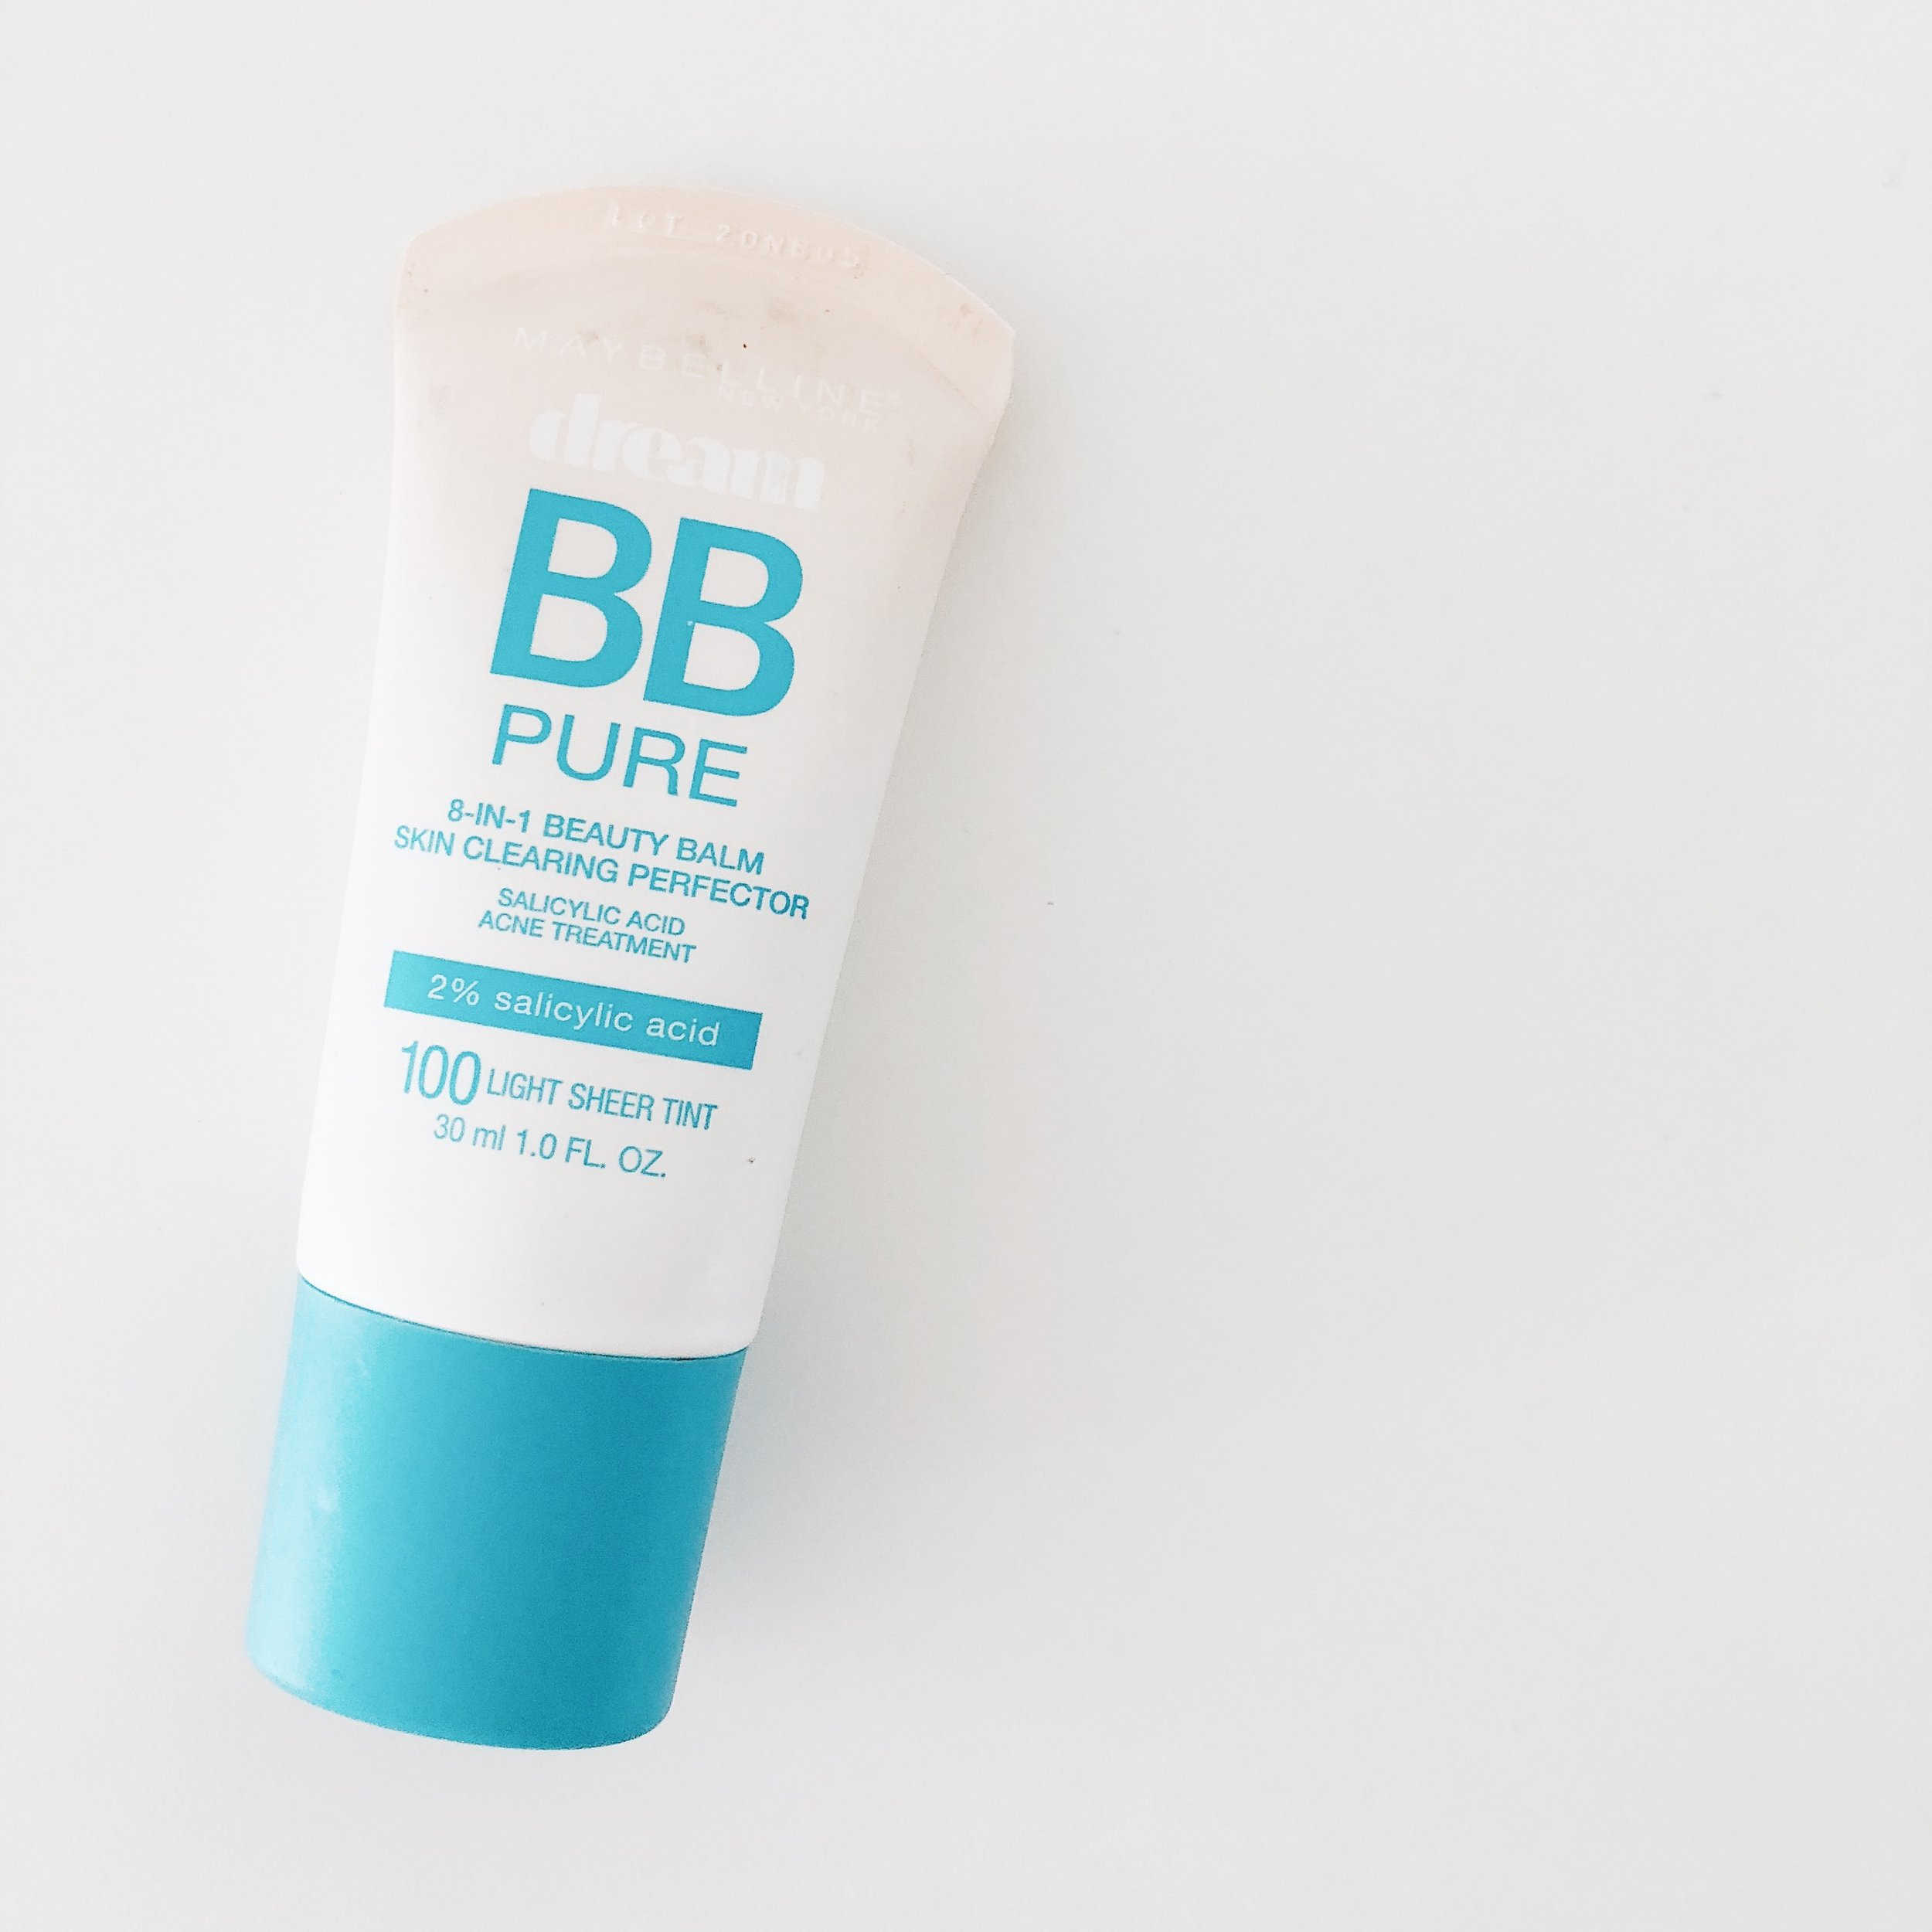 Very similar to Glossier's Skin tint, just with a little more coverage and less shine.